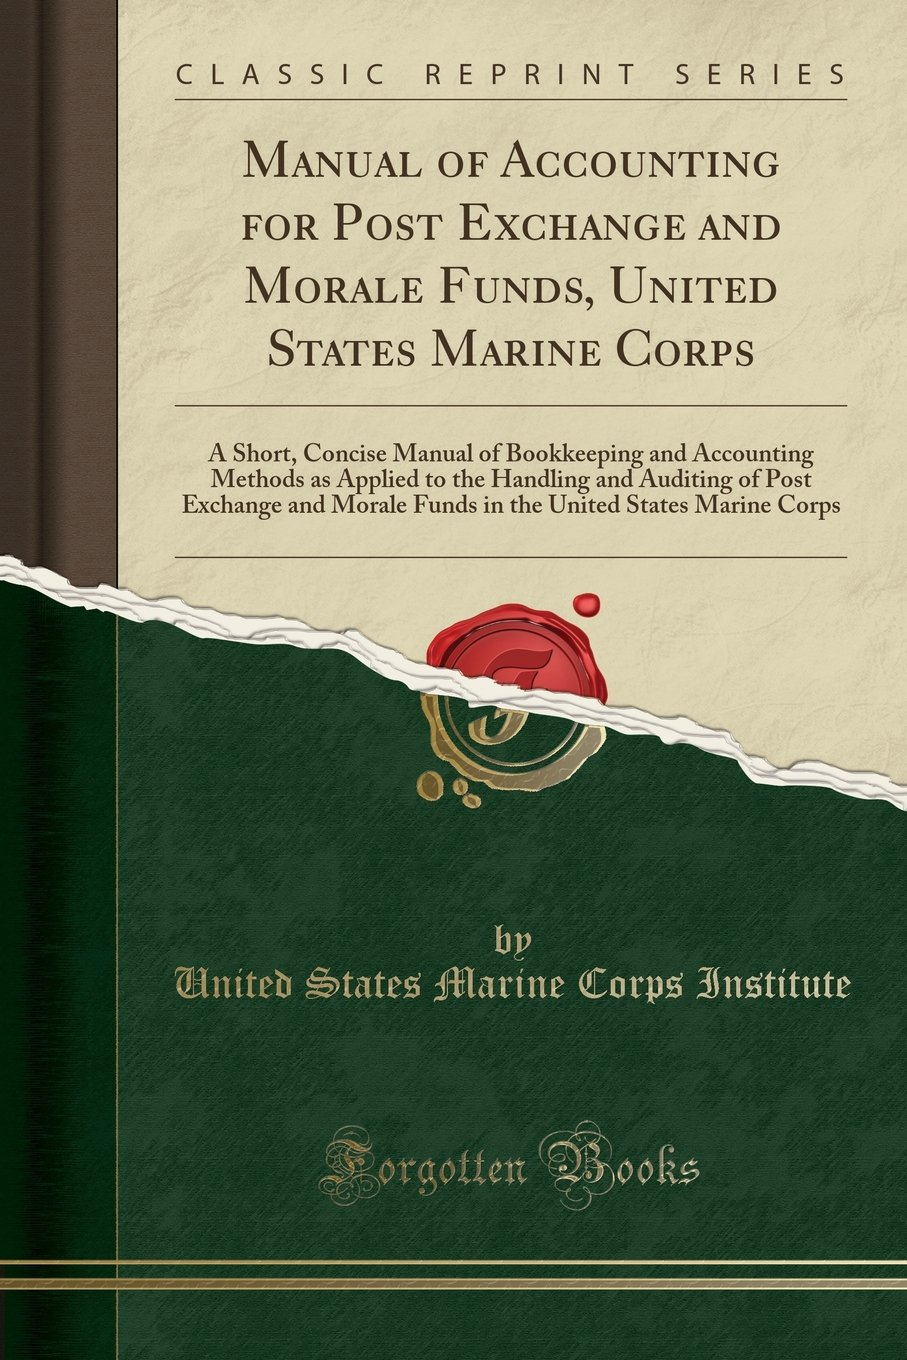 Download Manual of Accounting for Post Exchange and Morale Funds, United States Marine Corps: A Short, Concise Manual of Bookkeeping and Accounting Methods as ... Funds in the United States Marine Corps pdf